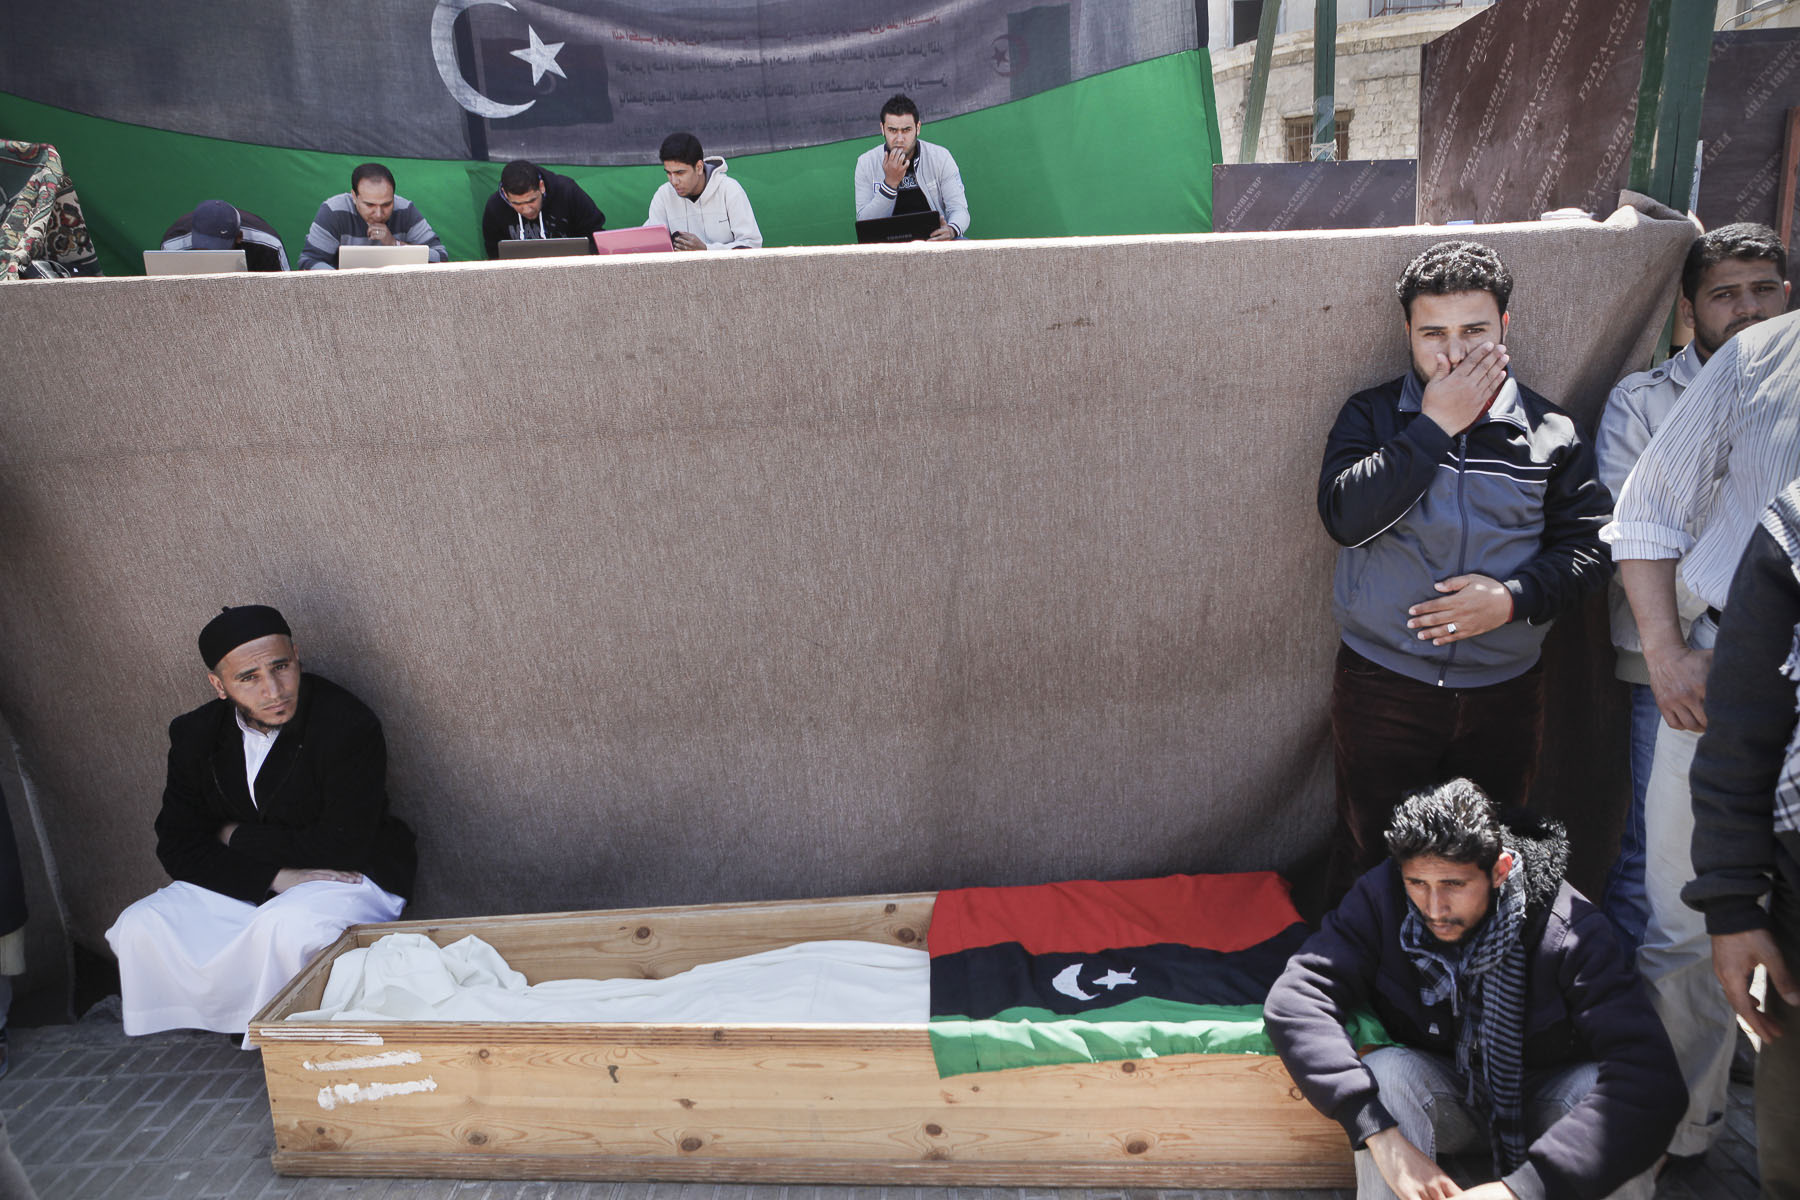 A coffins of a anti-Kadhafi fighter on the new Tahrir Square (Liberty Square) of Benghazi in April 2011